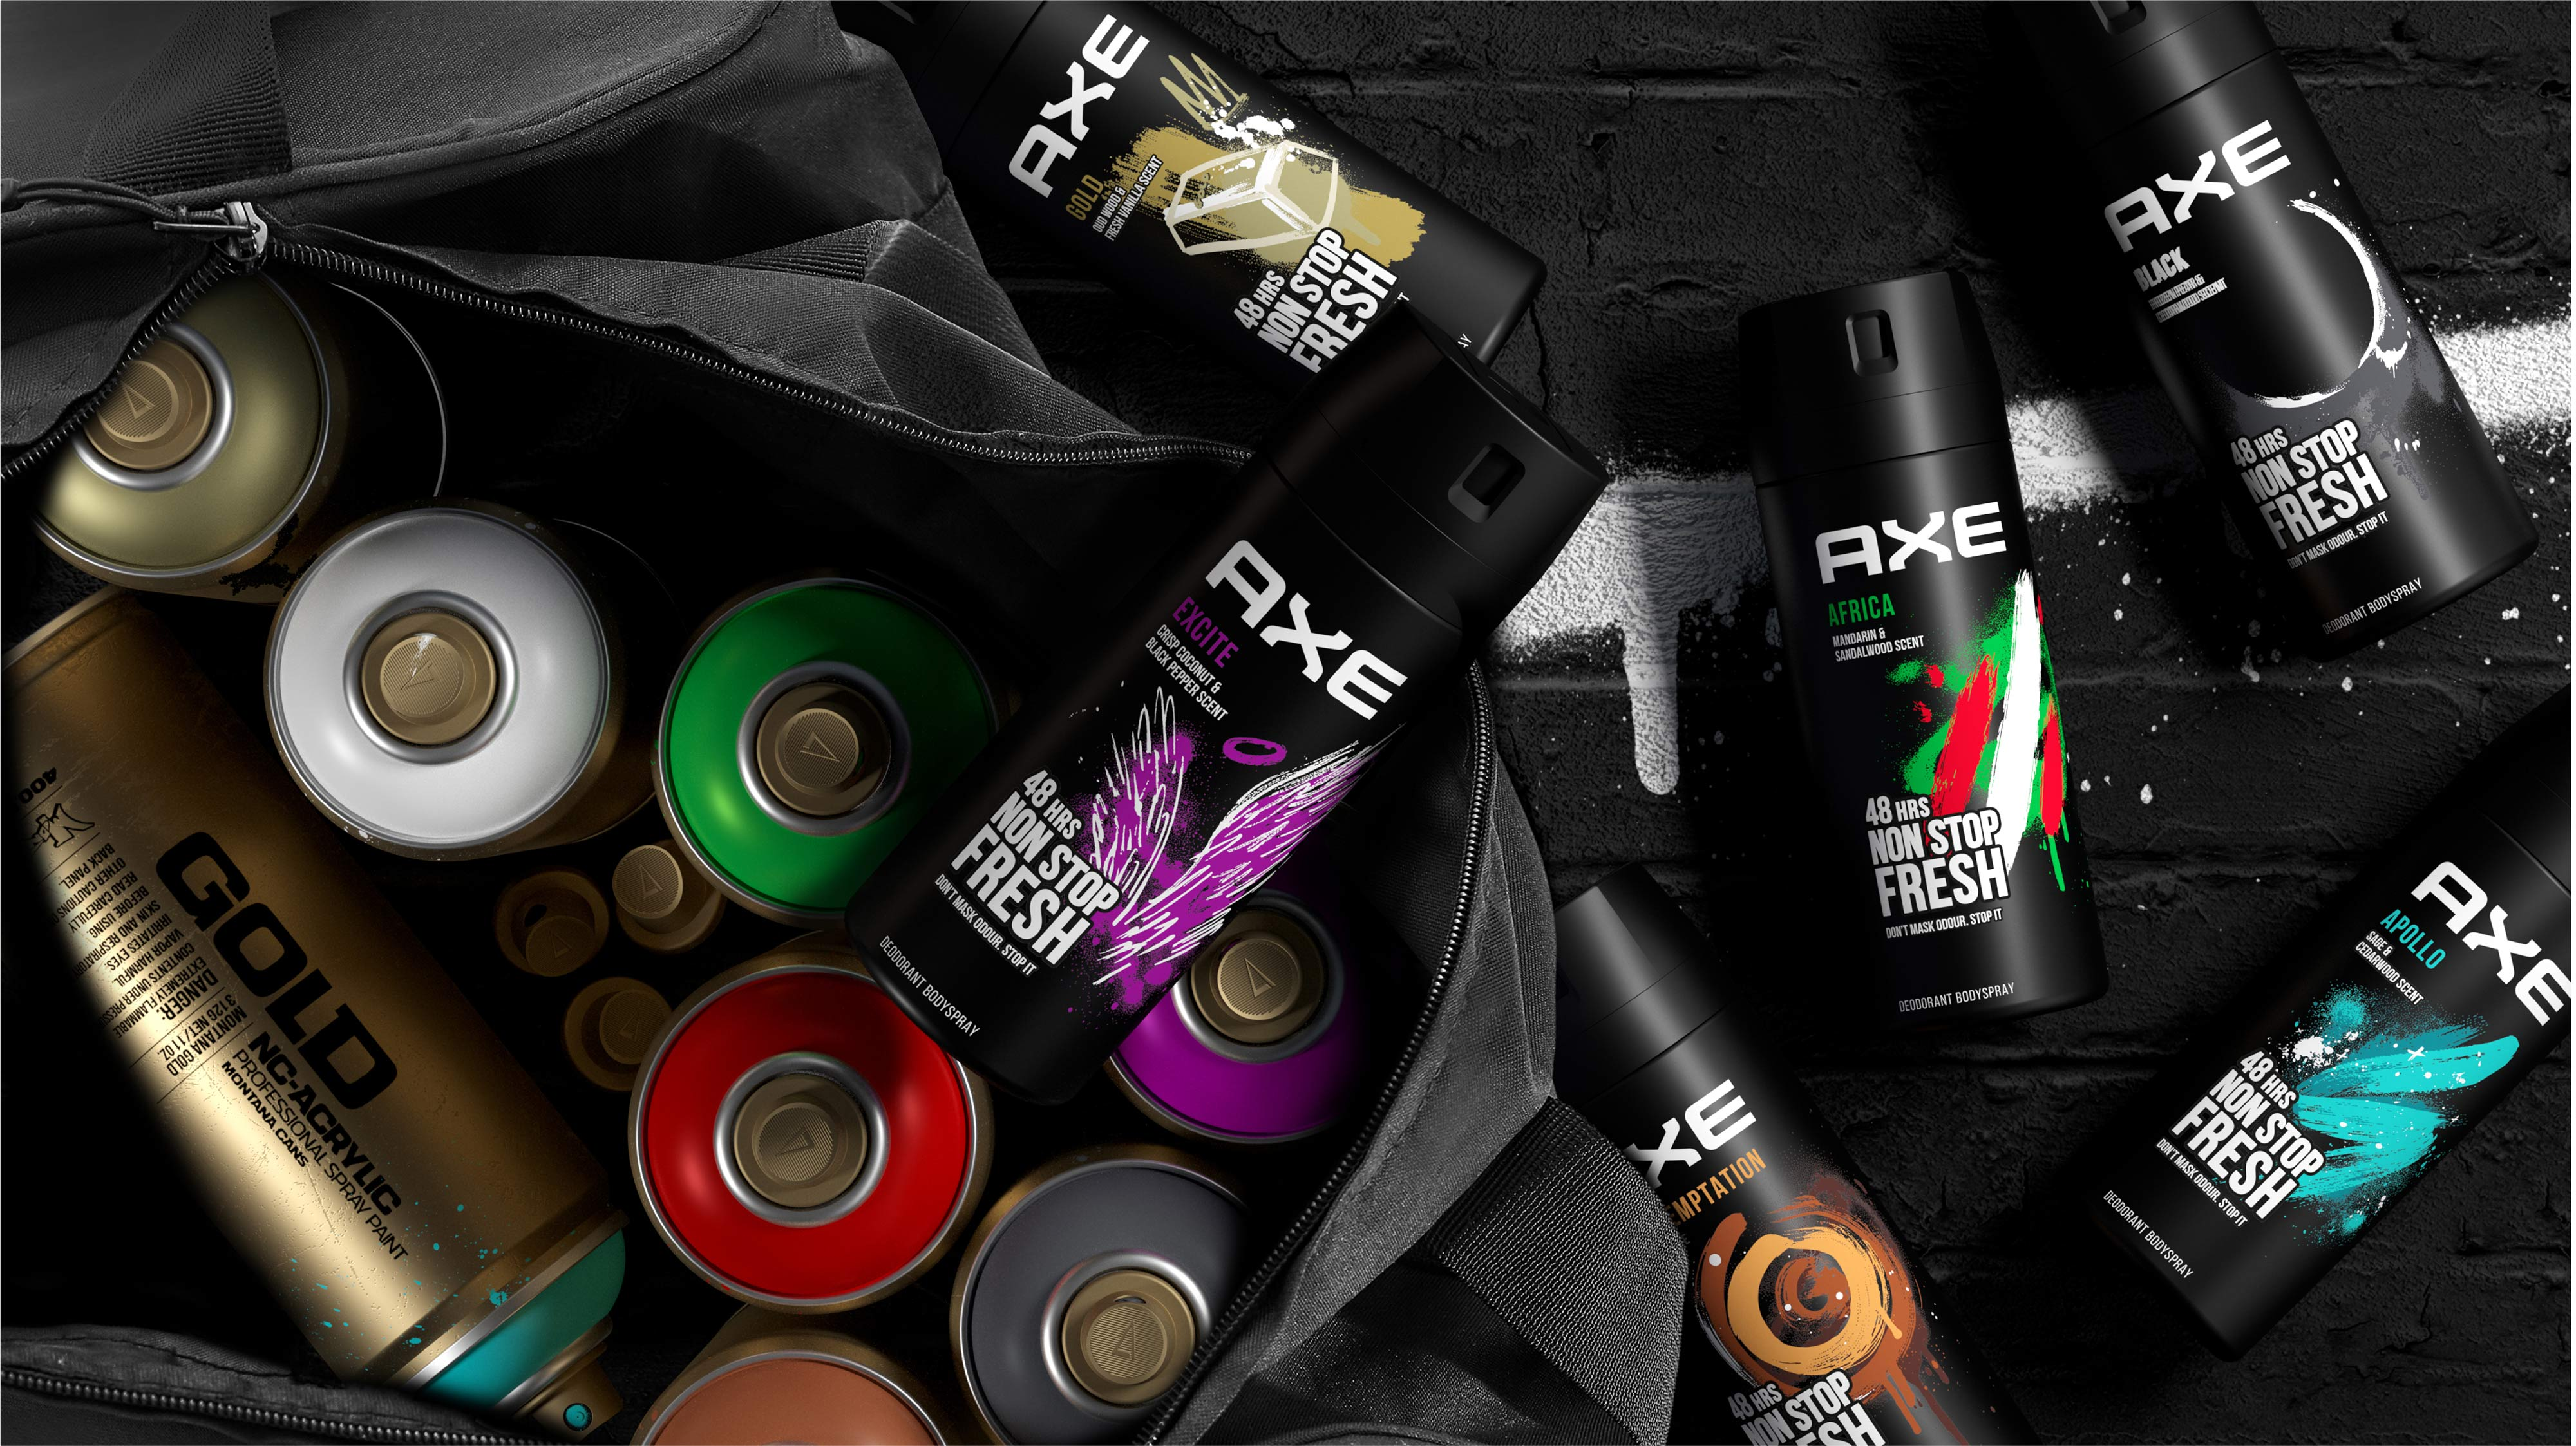 Expression is the Future! Axe Global Redesign by PB Creative